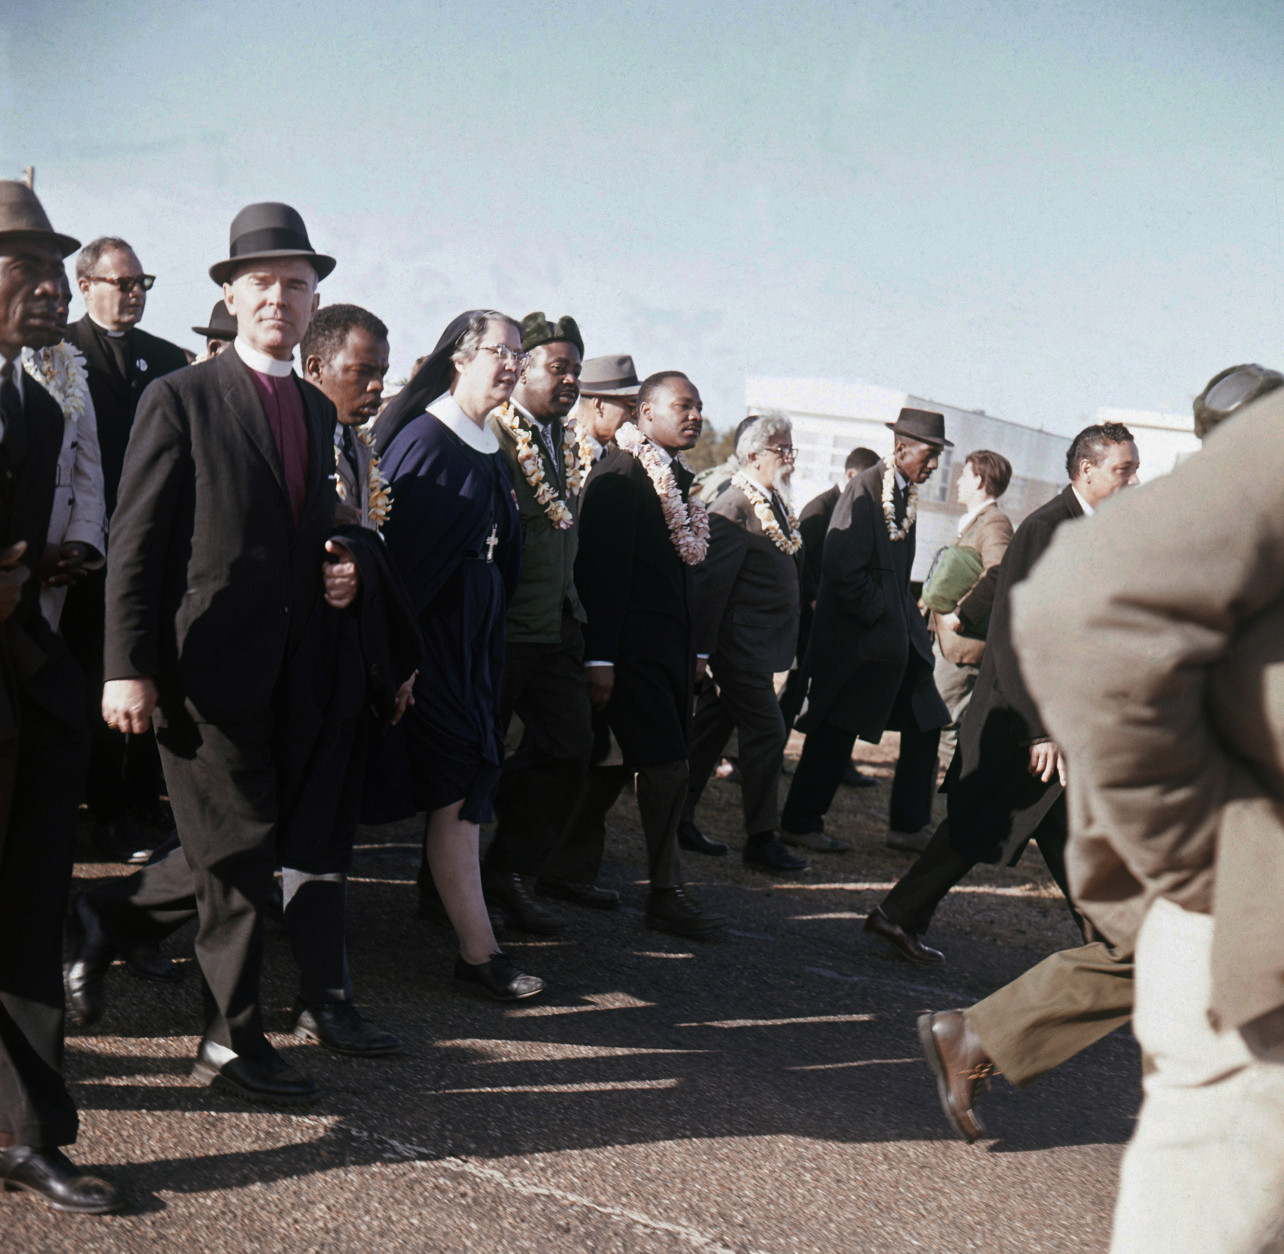 FILE - In this March 1965 file photo, Martin Luther King, center, leads a march from Selma to Montgomery, Ala. In early 1965, King's Southern Christian Leadership Conference began a series of marches as part of a push for black voting rights. (AP Photo/File)